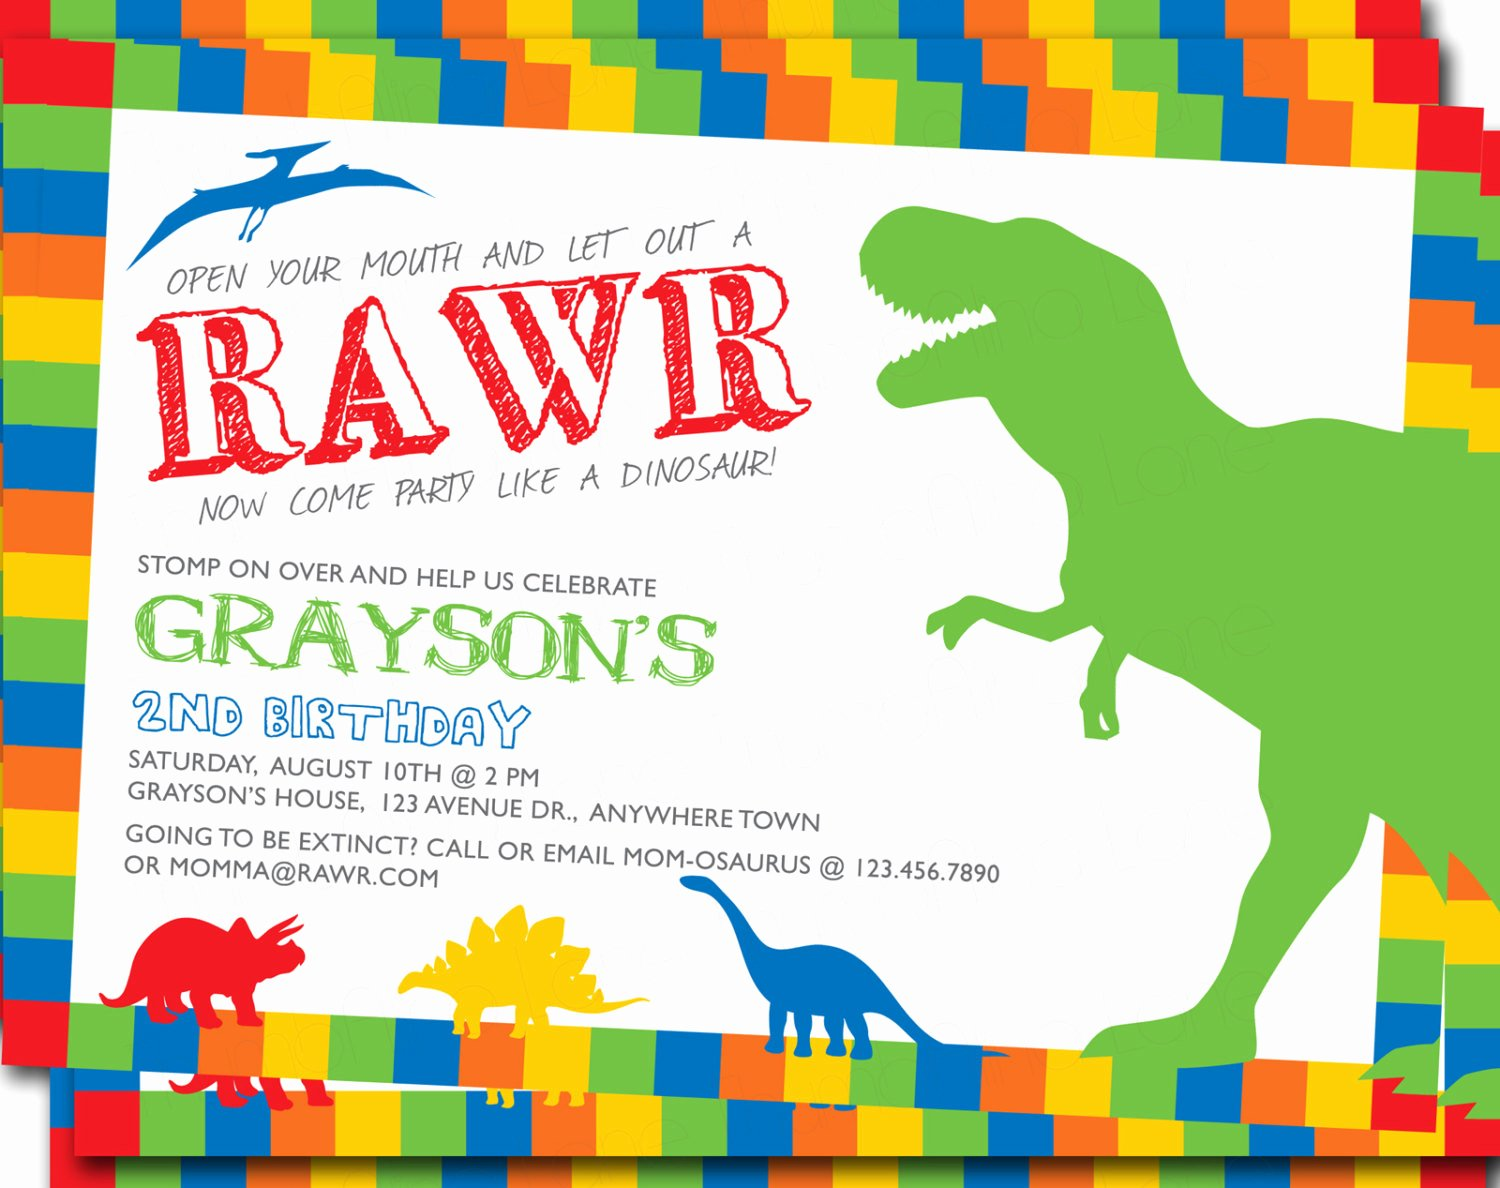 Dinosaur Invitations Free Printable Beautiful Dinosaur Printable Invitation Birthday Party Diy T Rex